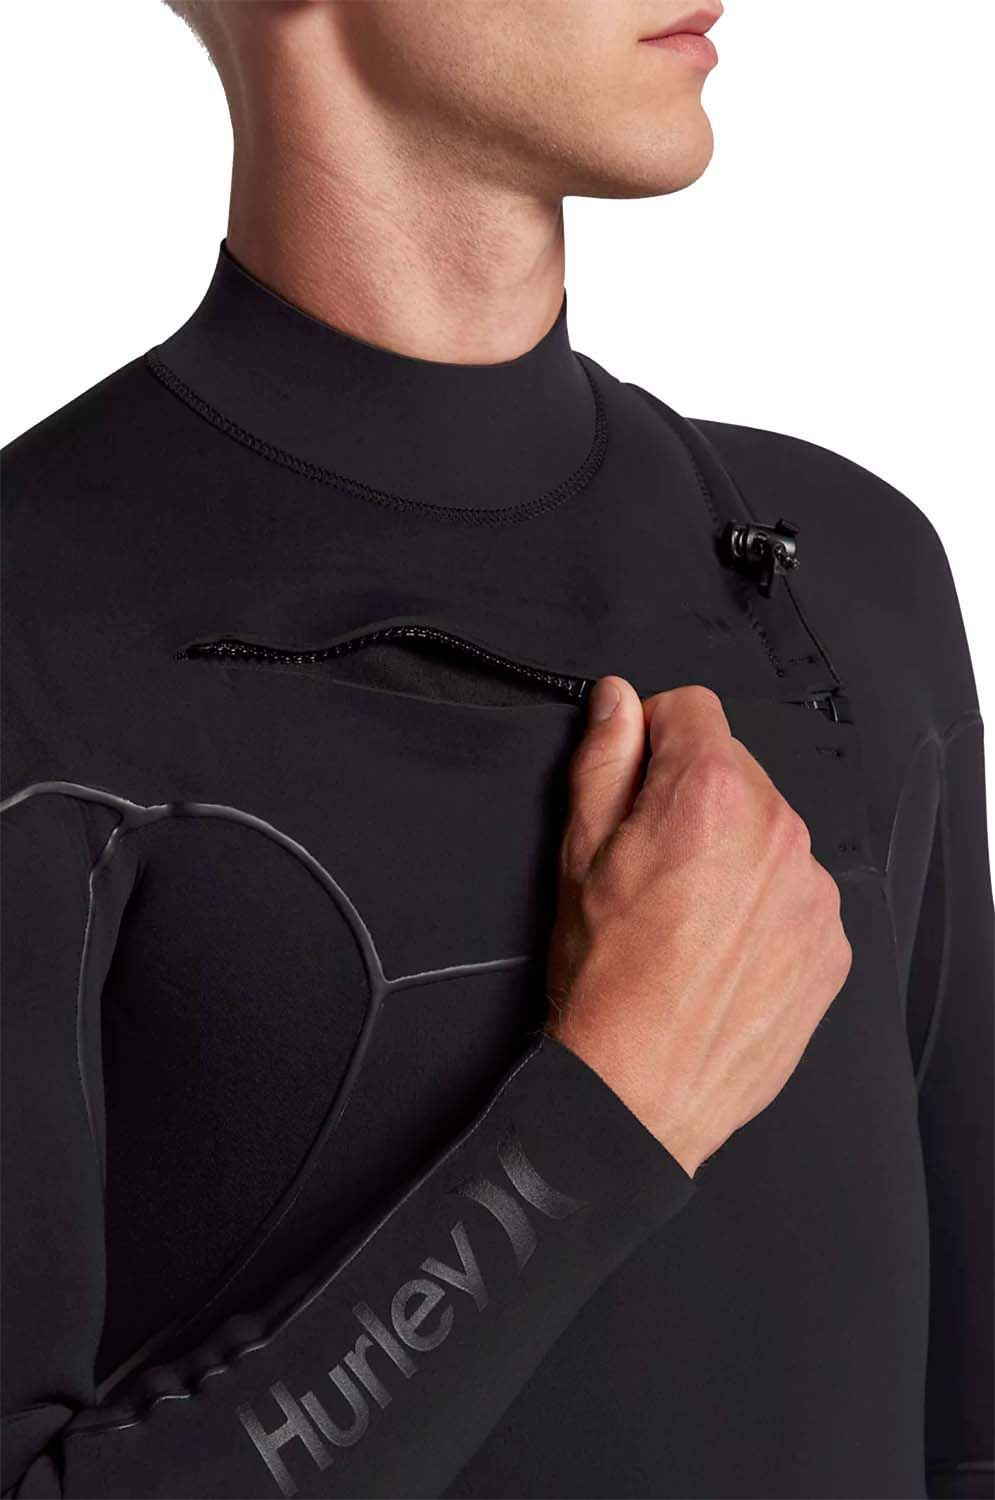 Fato Neoprene Hurley ADVANTAGE MAX 4/3 FULL SUIT Black